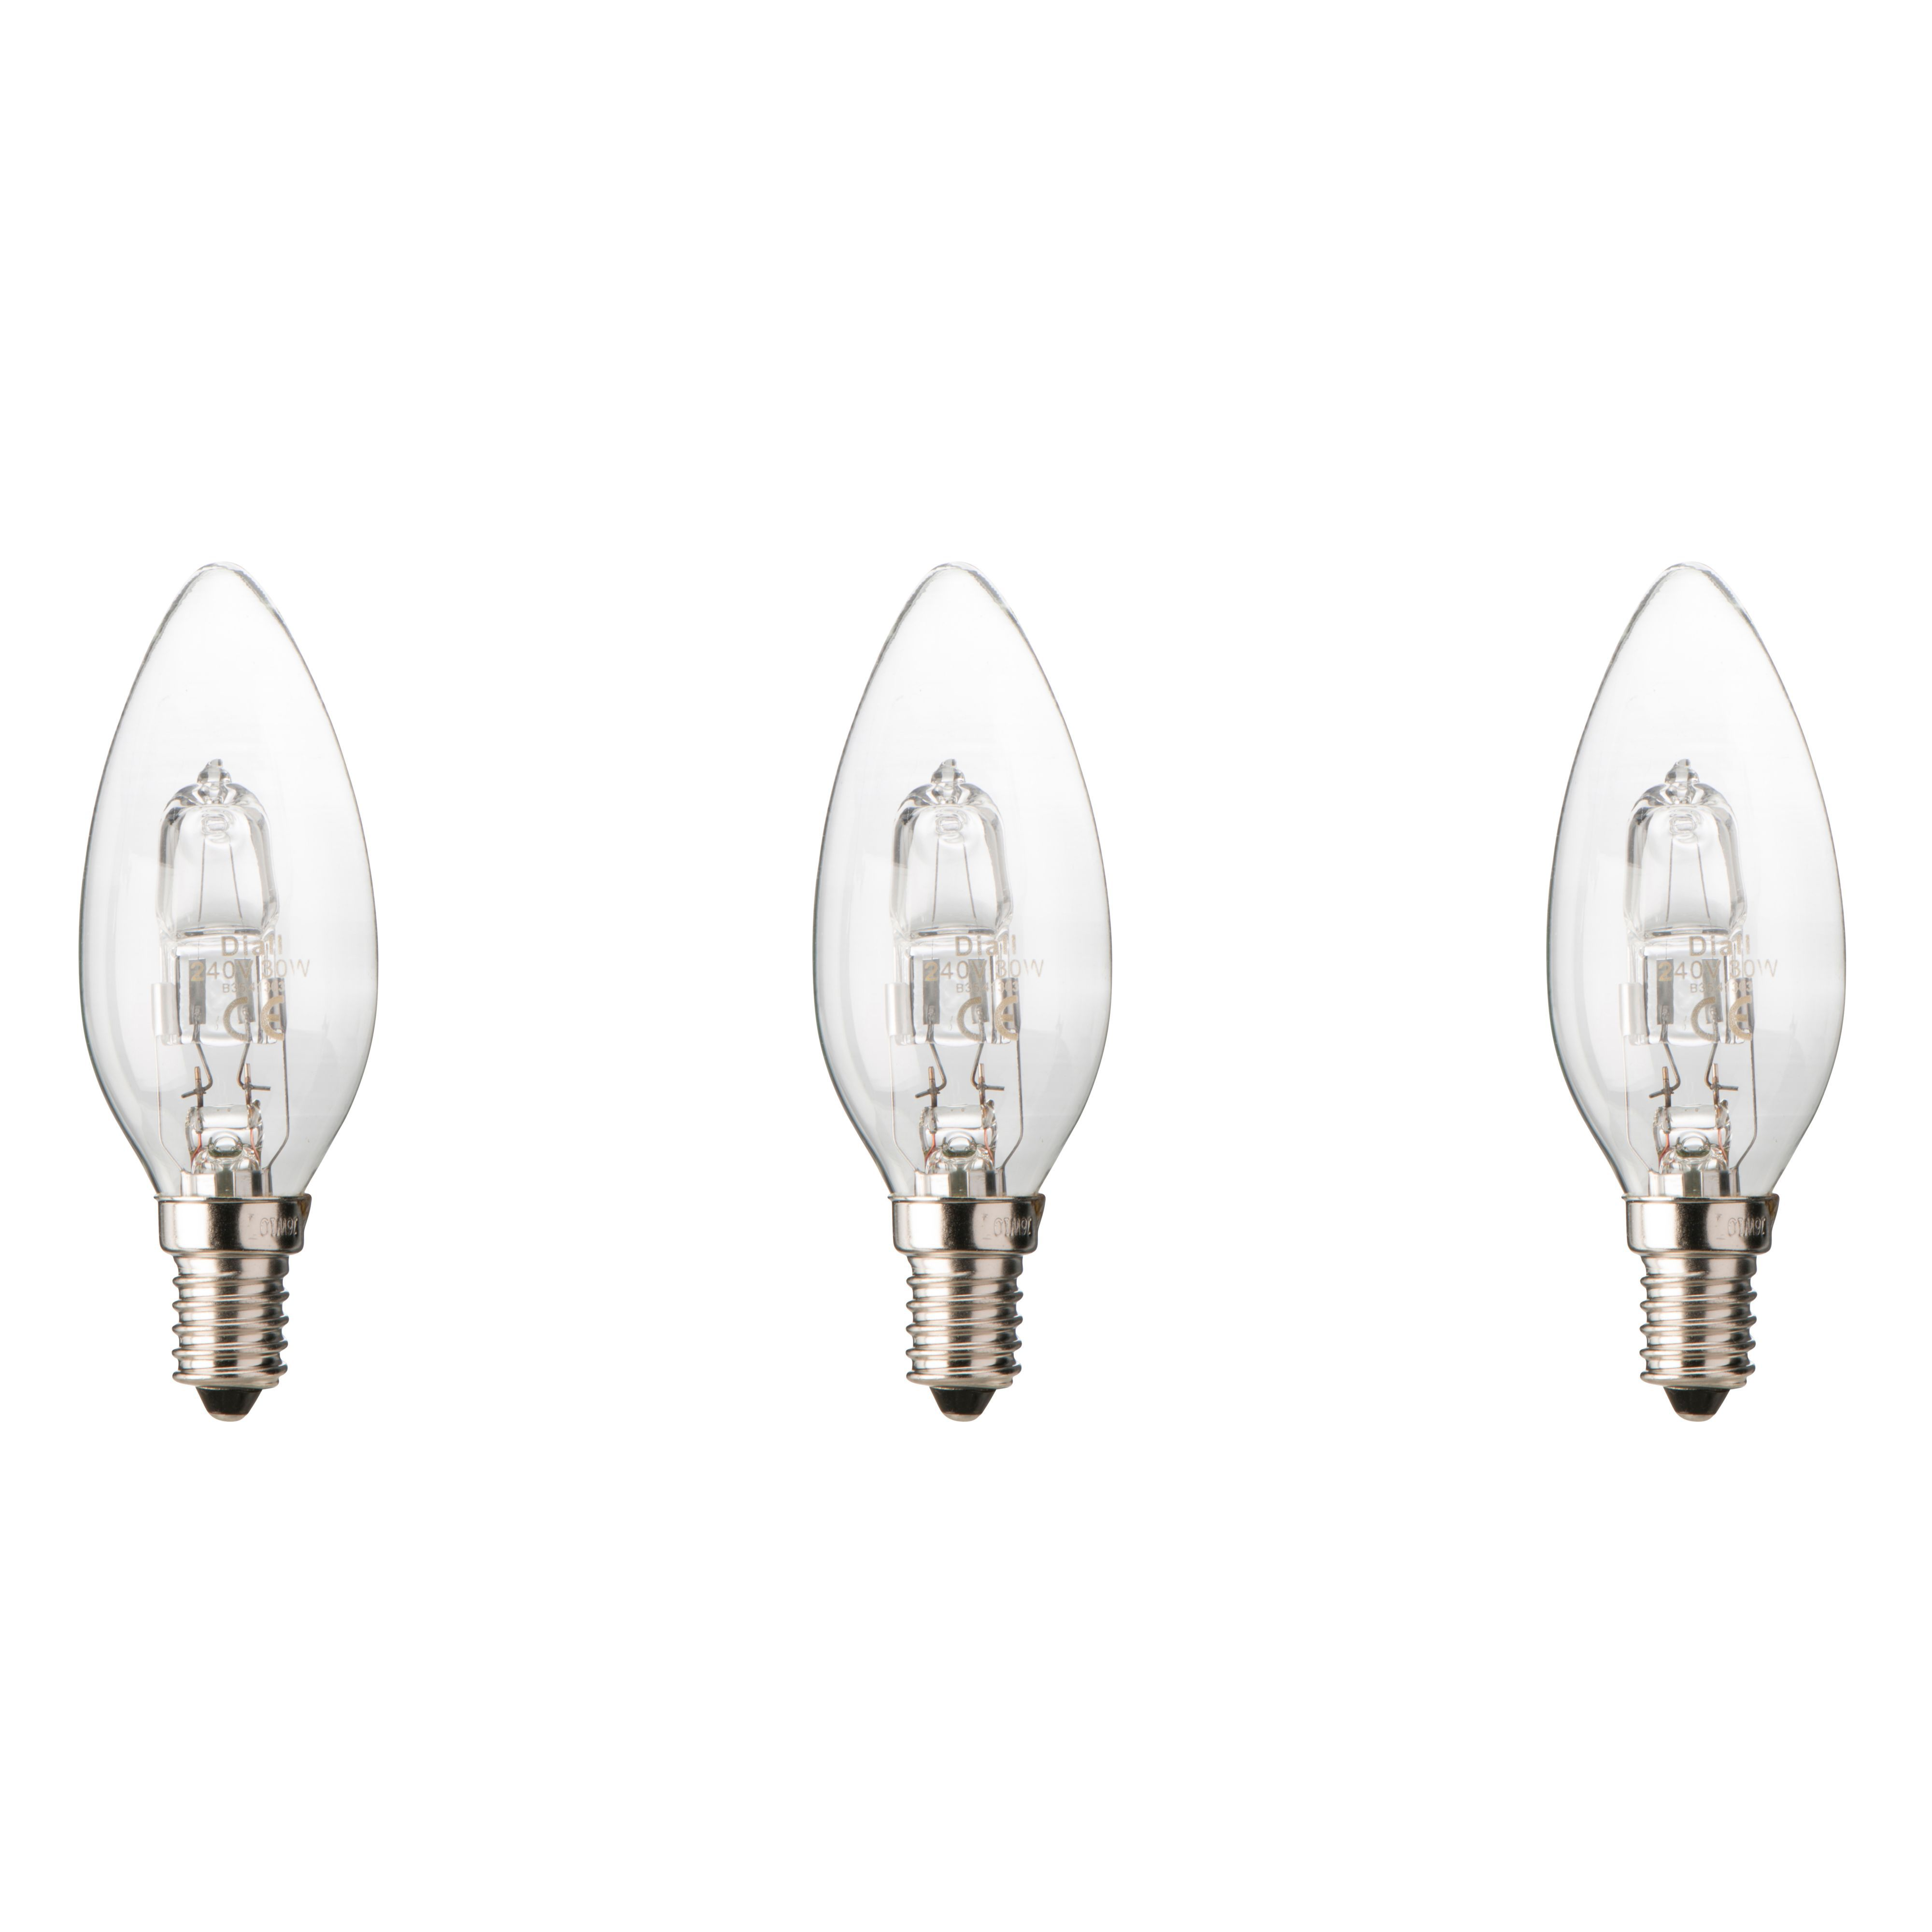 Diall E14 30w Halogen Dimmable Candle Light Bulb, Pack Of 3